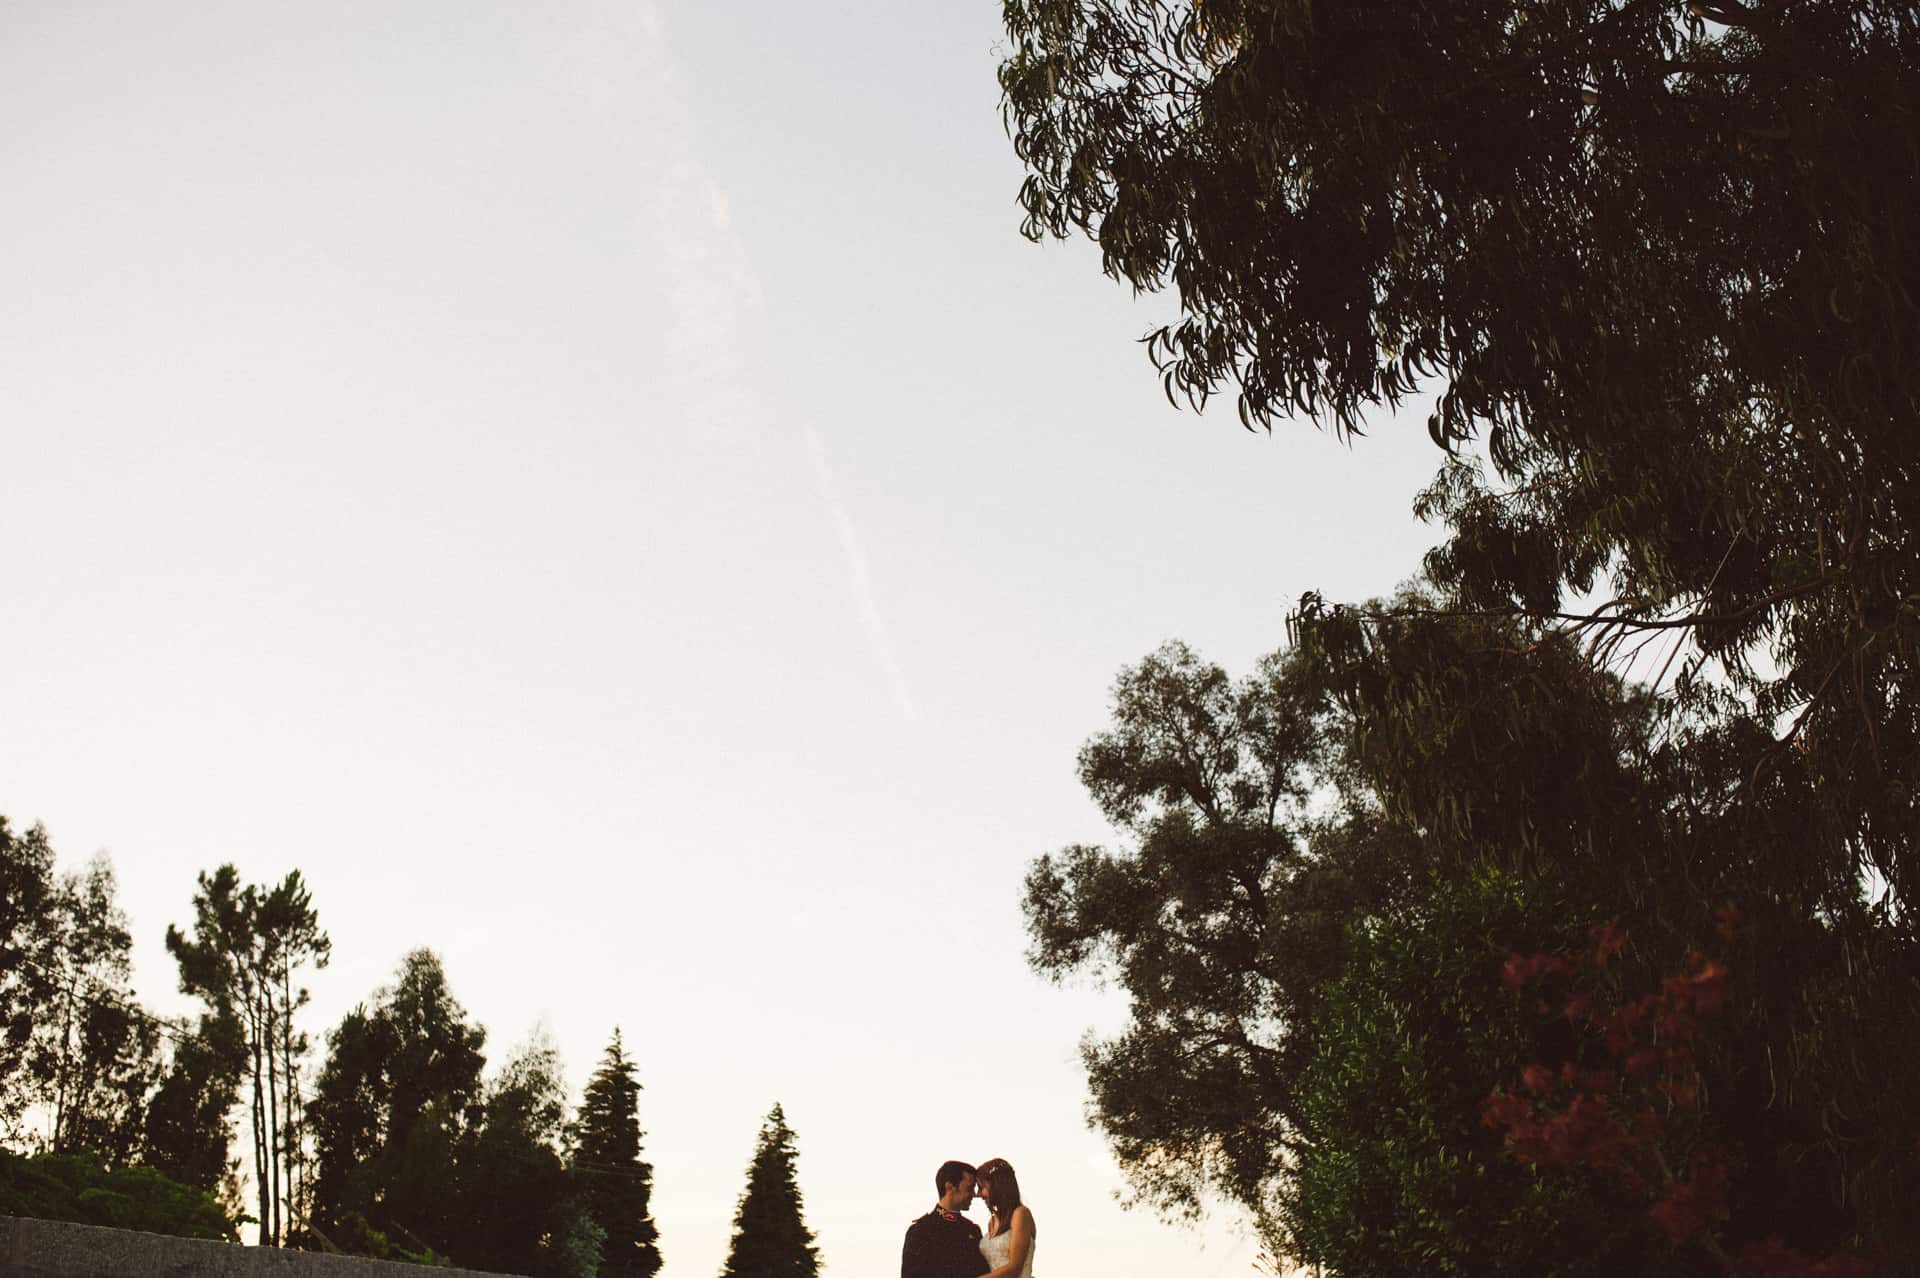 Best wedding images of the year (118 of 316)